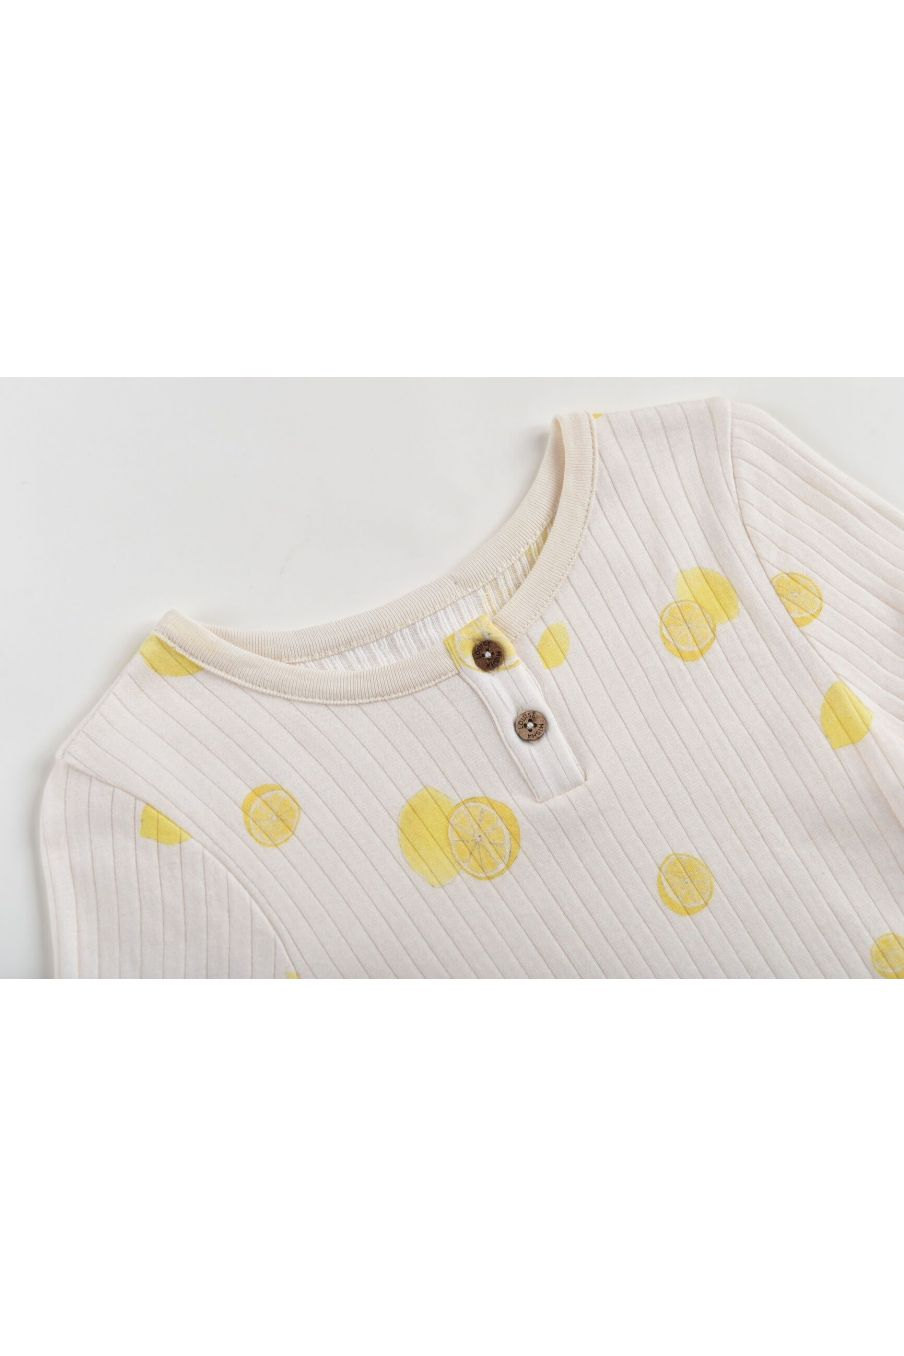 boheme chic vintage t-shirt garcon apoli cream lemons